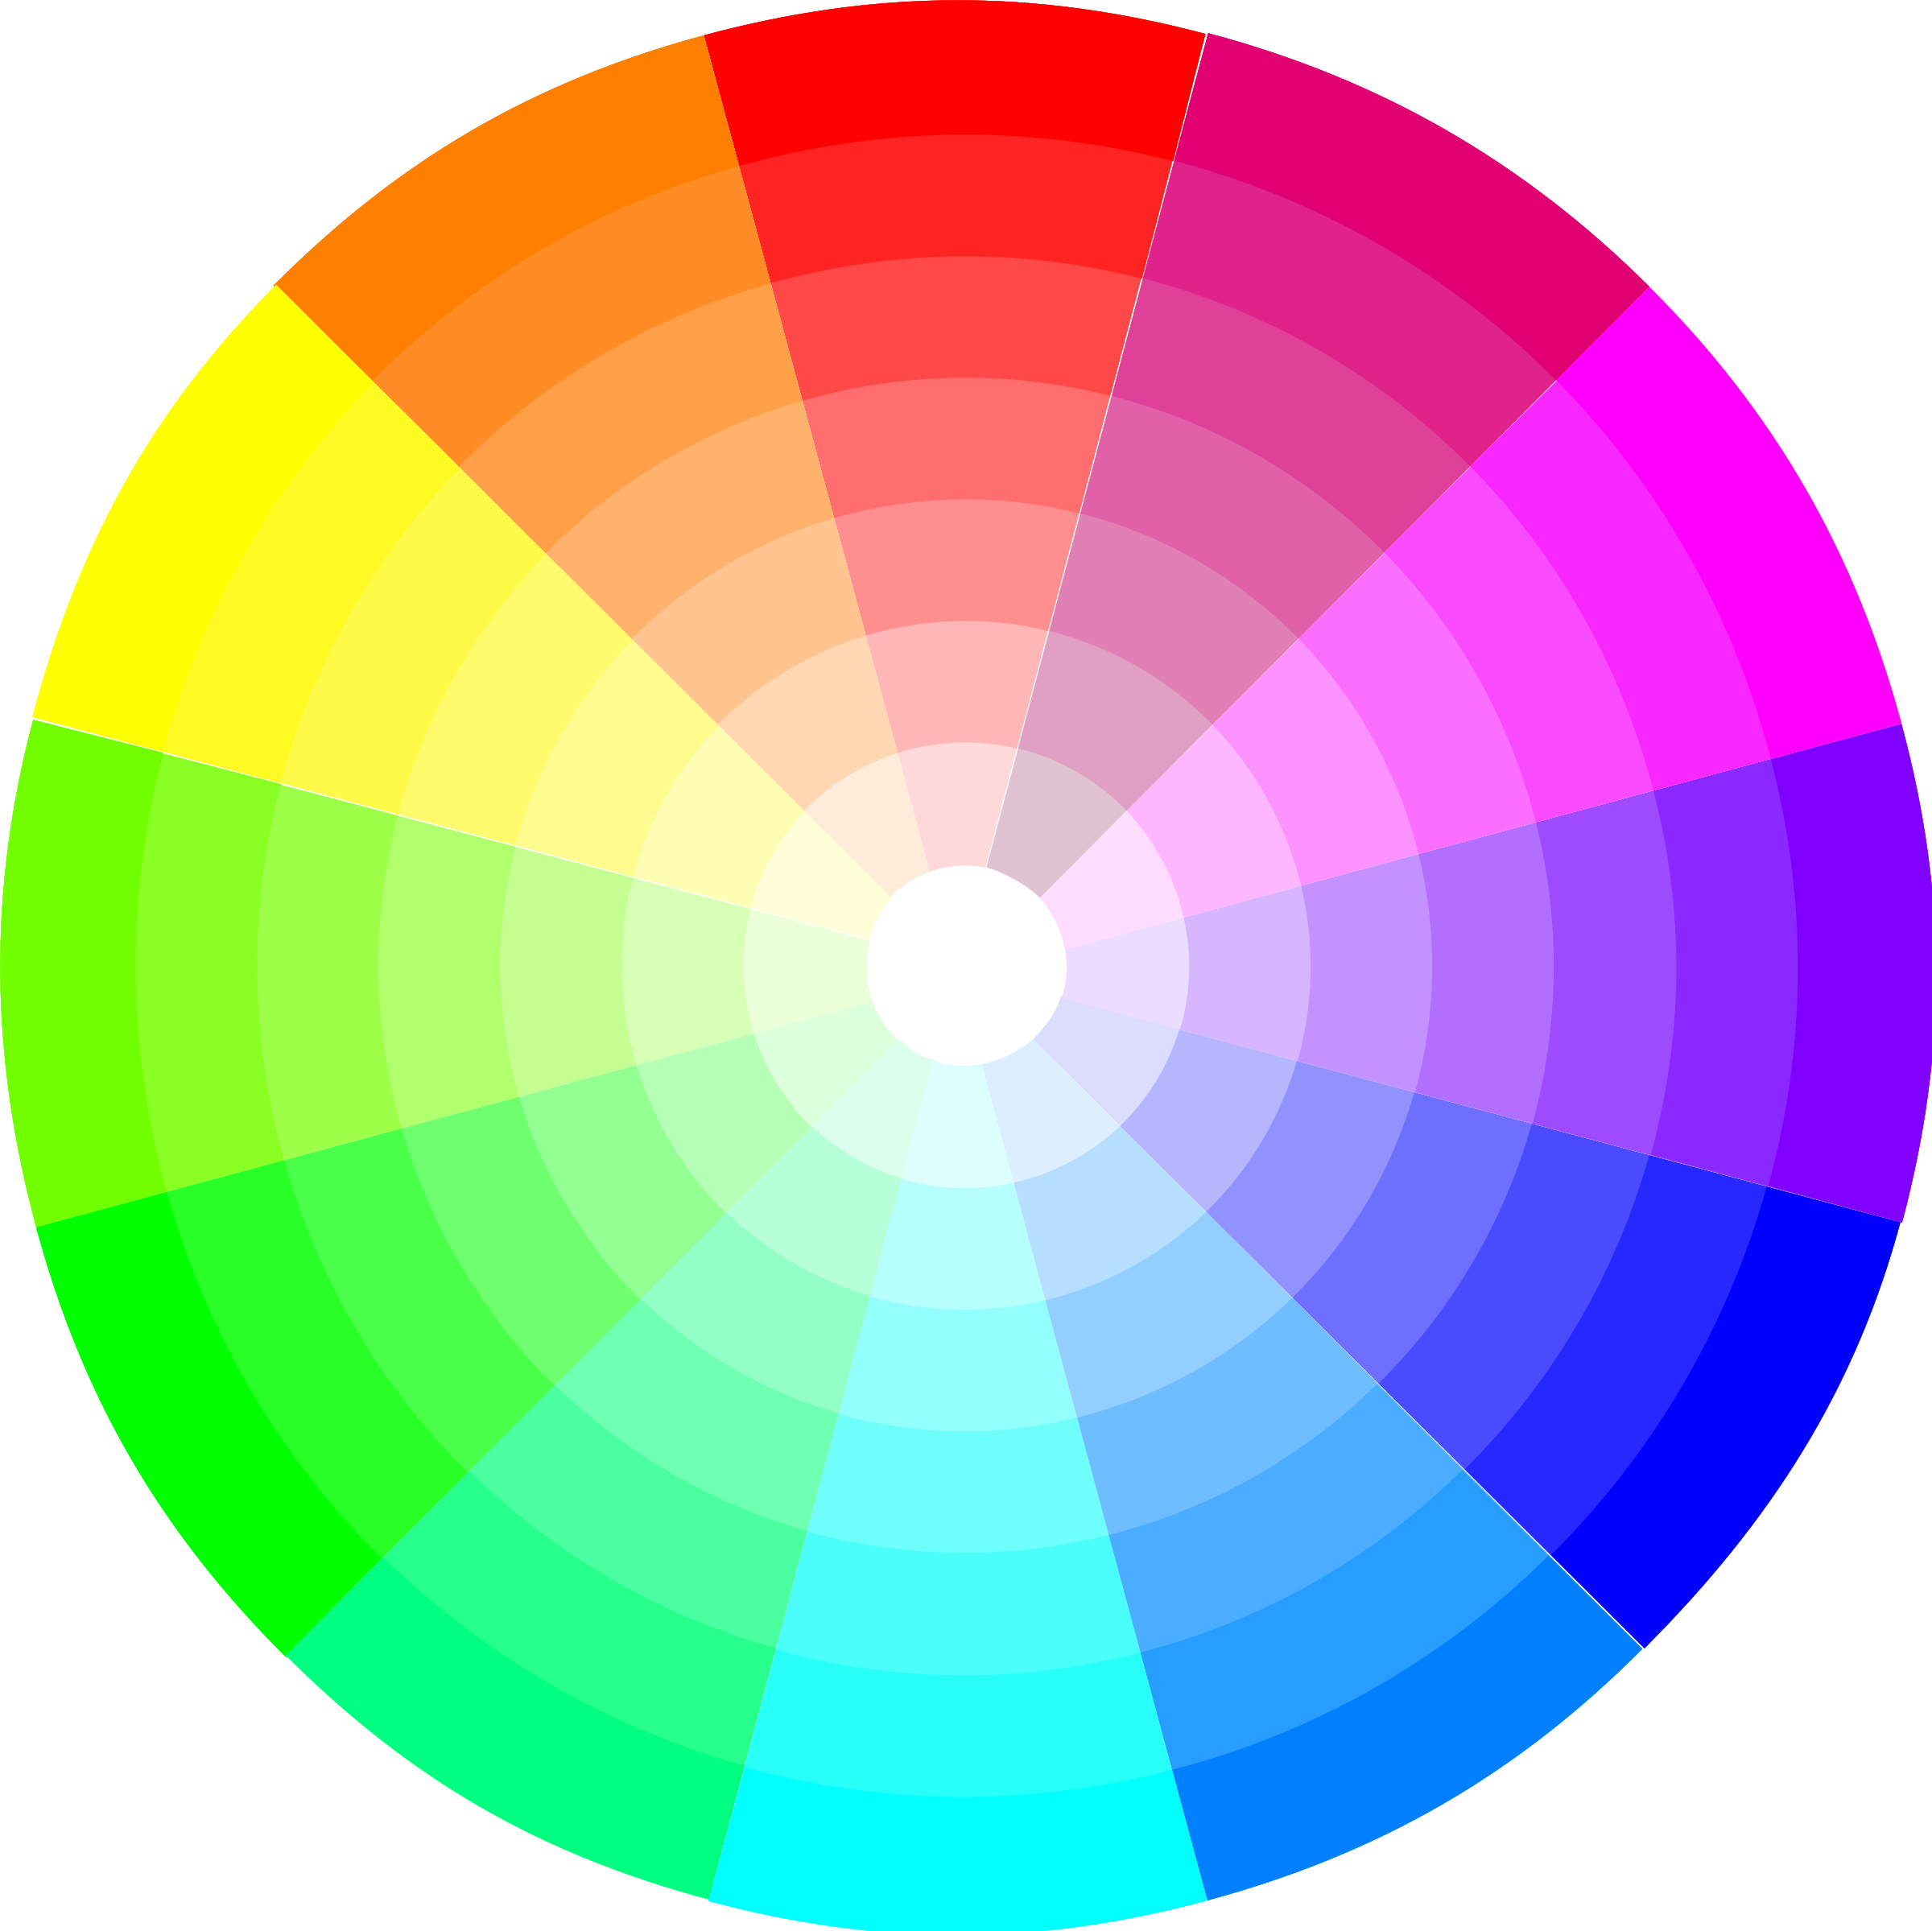 1000+ images about Color on Pinterest.